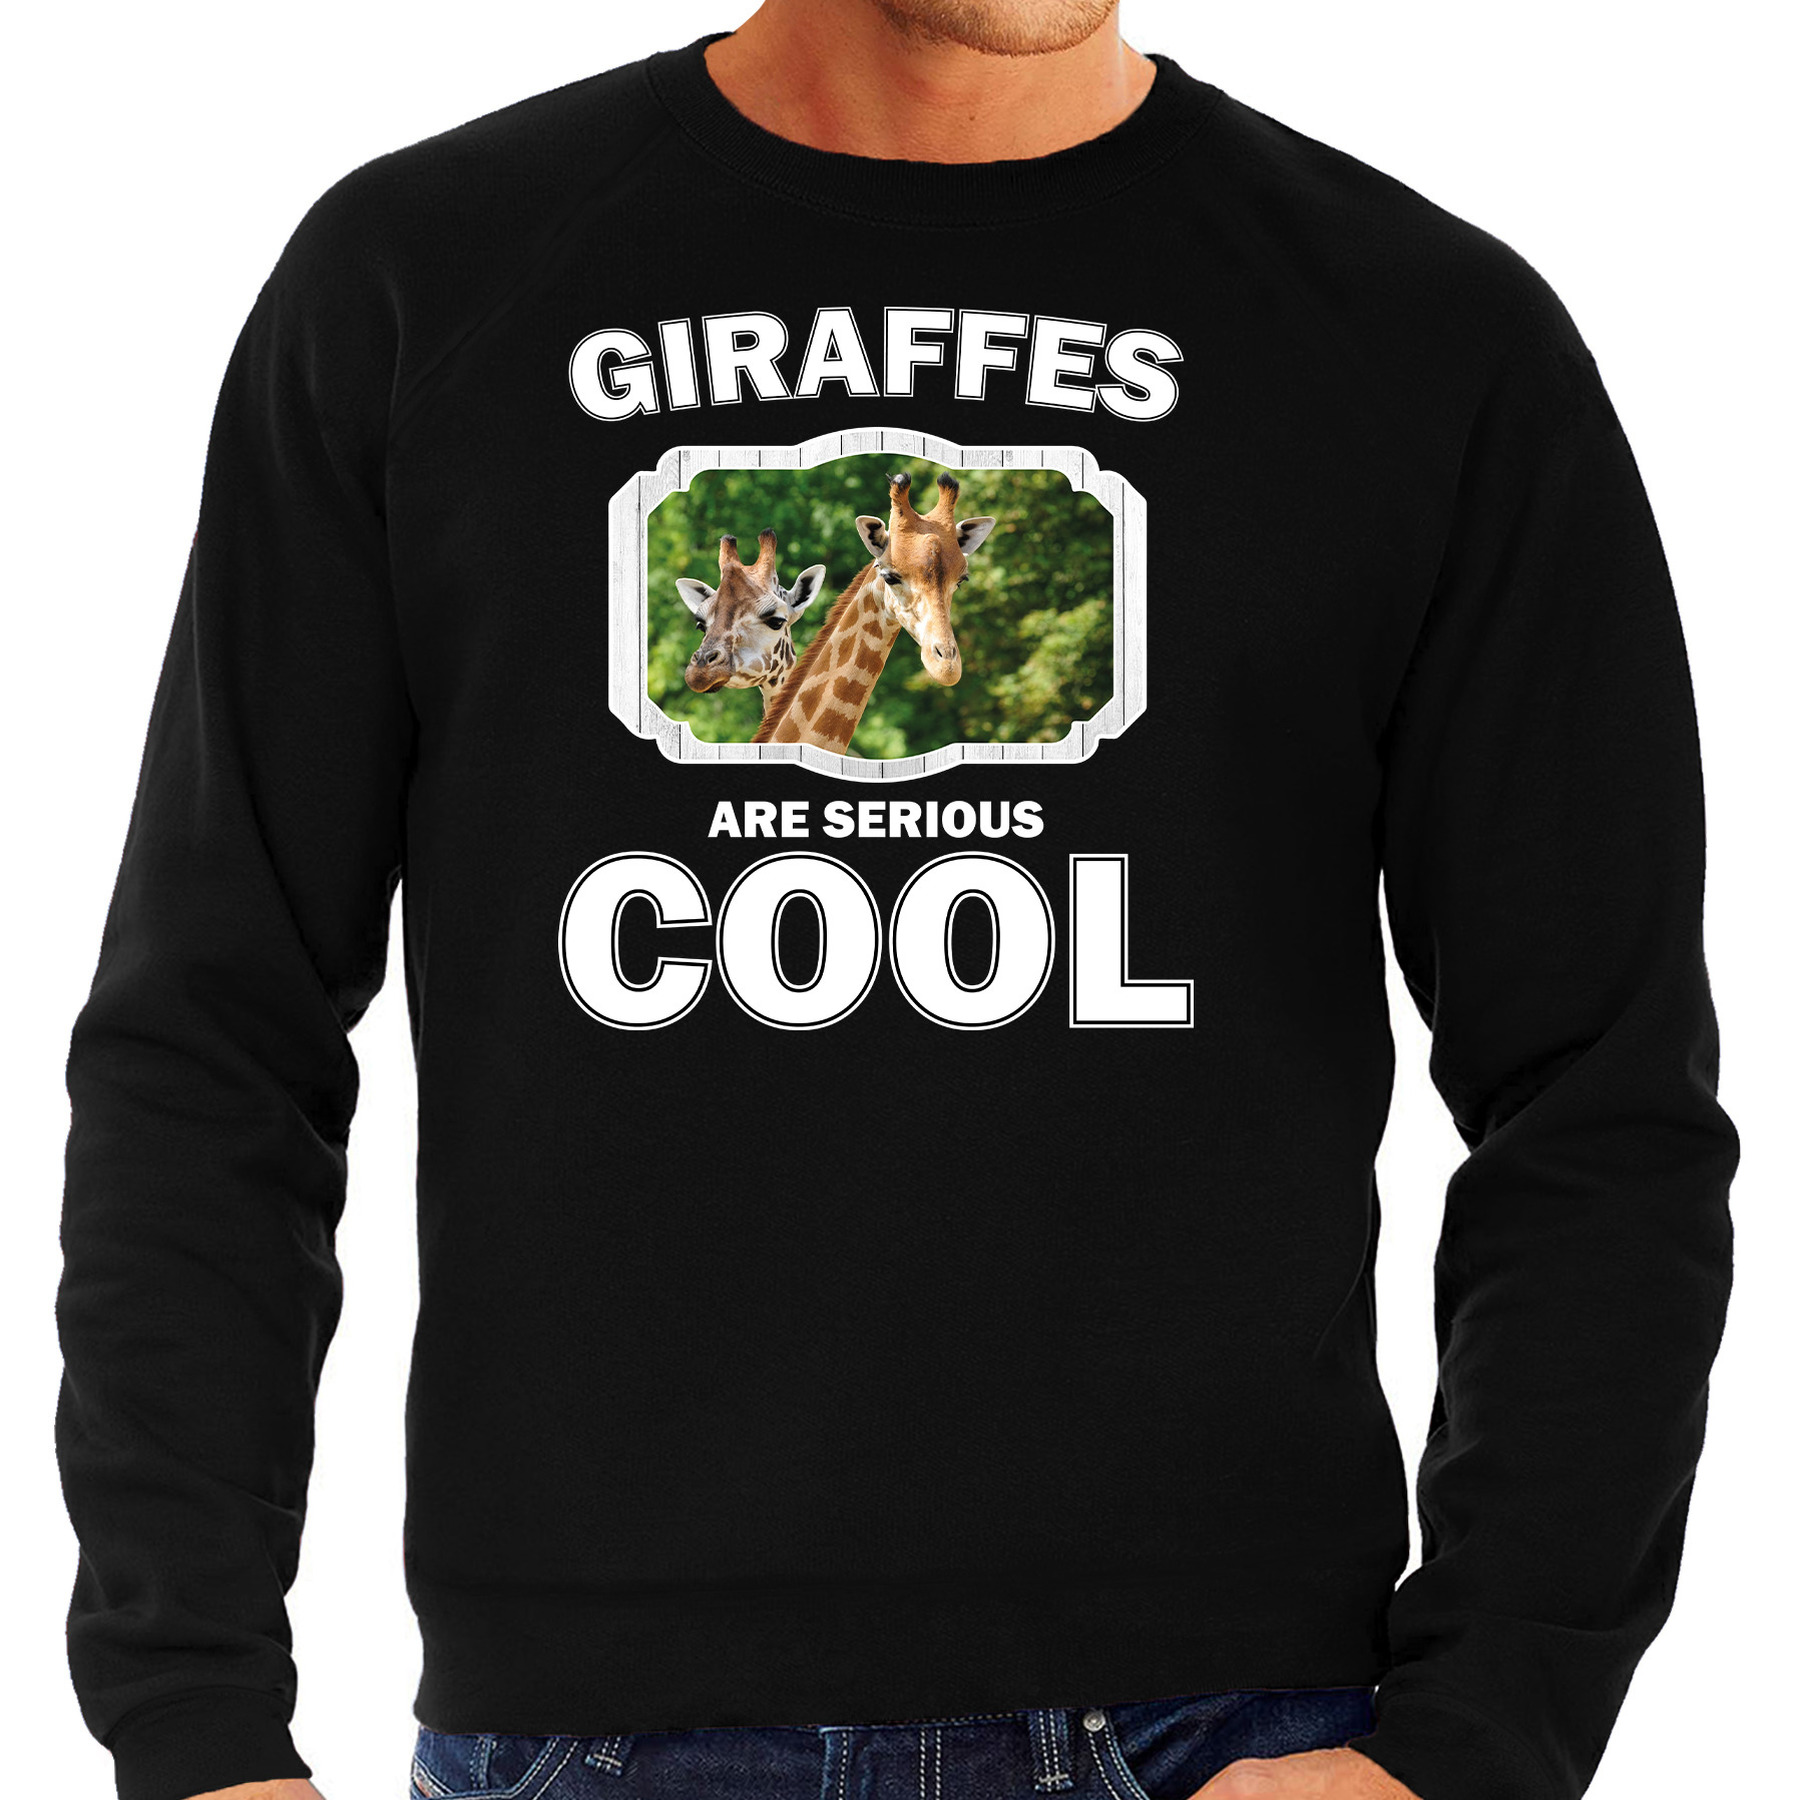 Sweater giraffes are serious cool zwart heren - giraffen/ giraffe trui